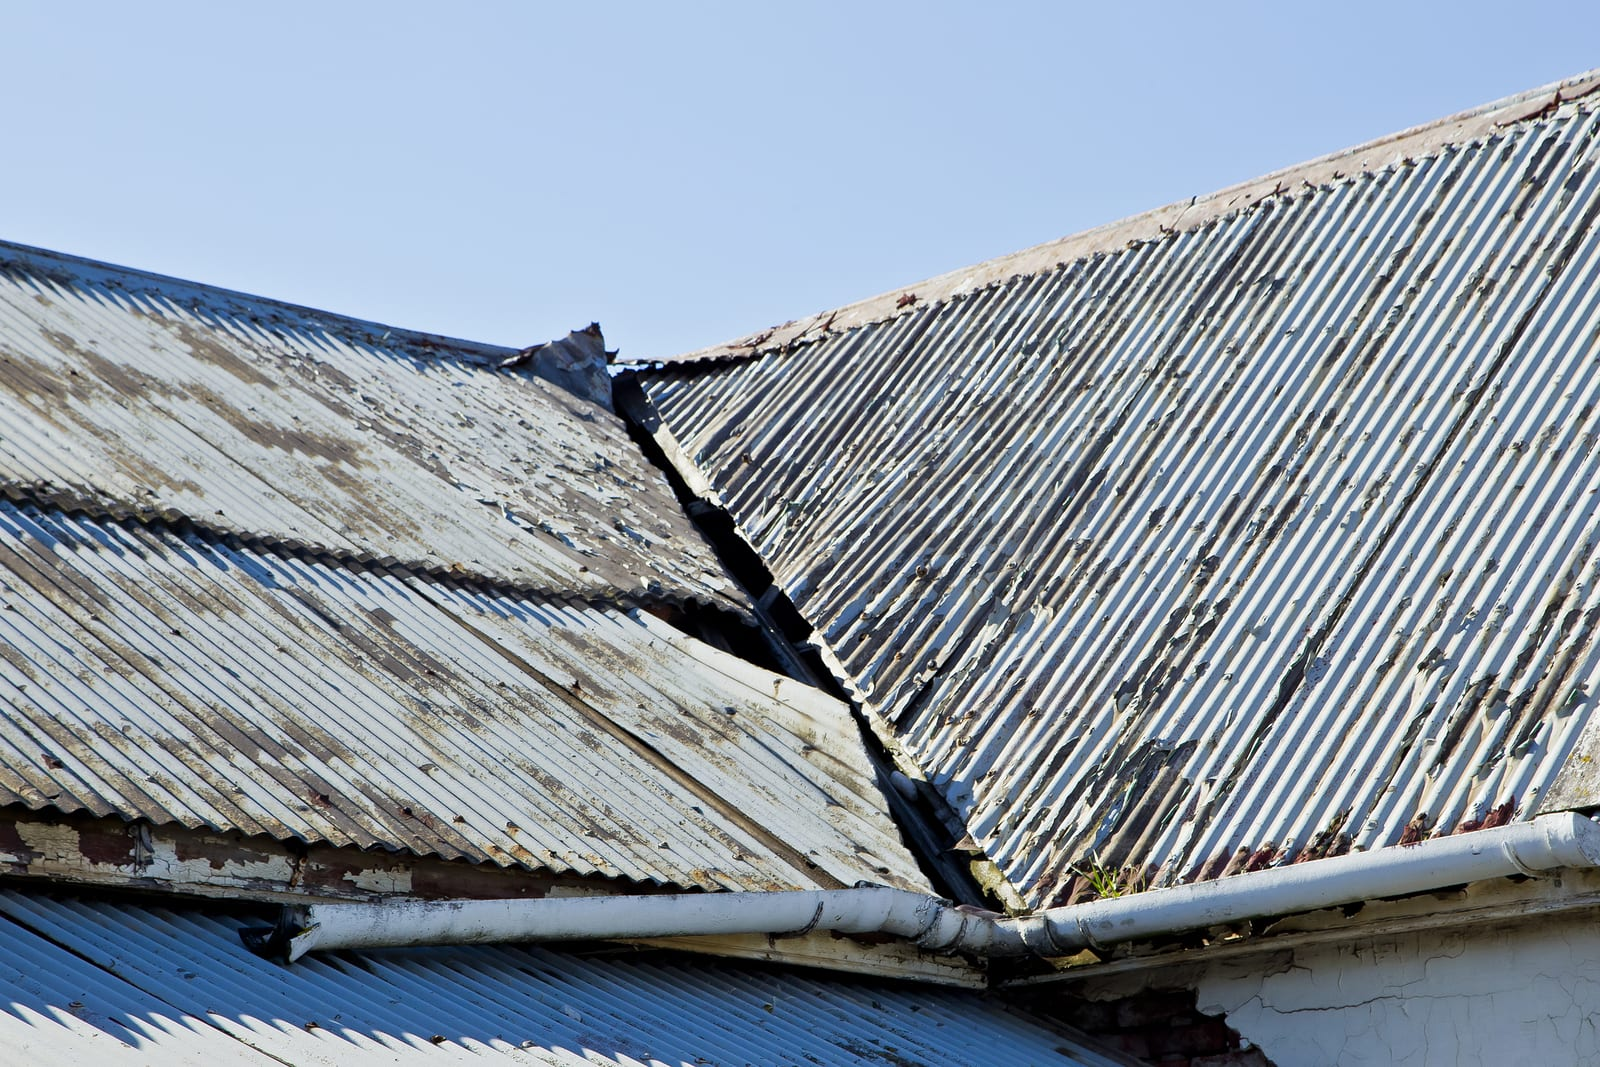 Broken corrugated iron roof sheets on an old abandoned house